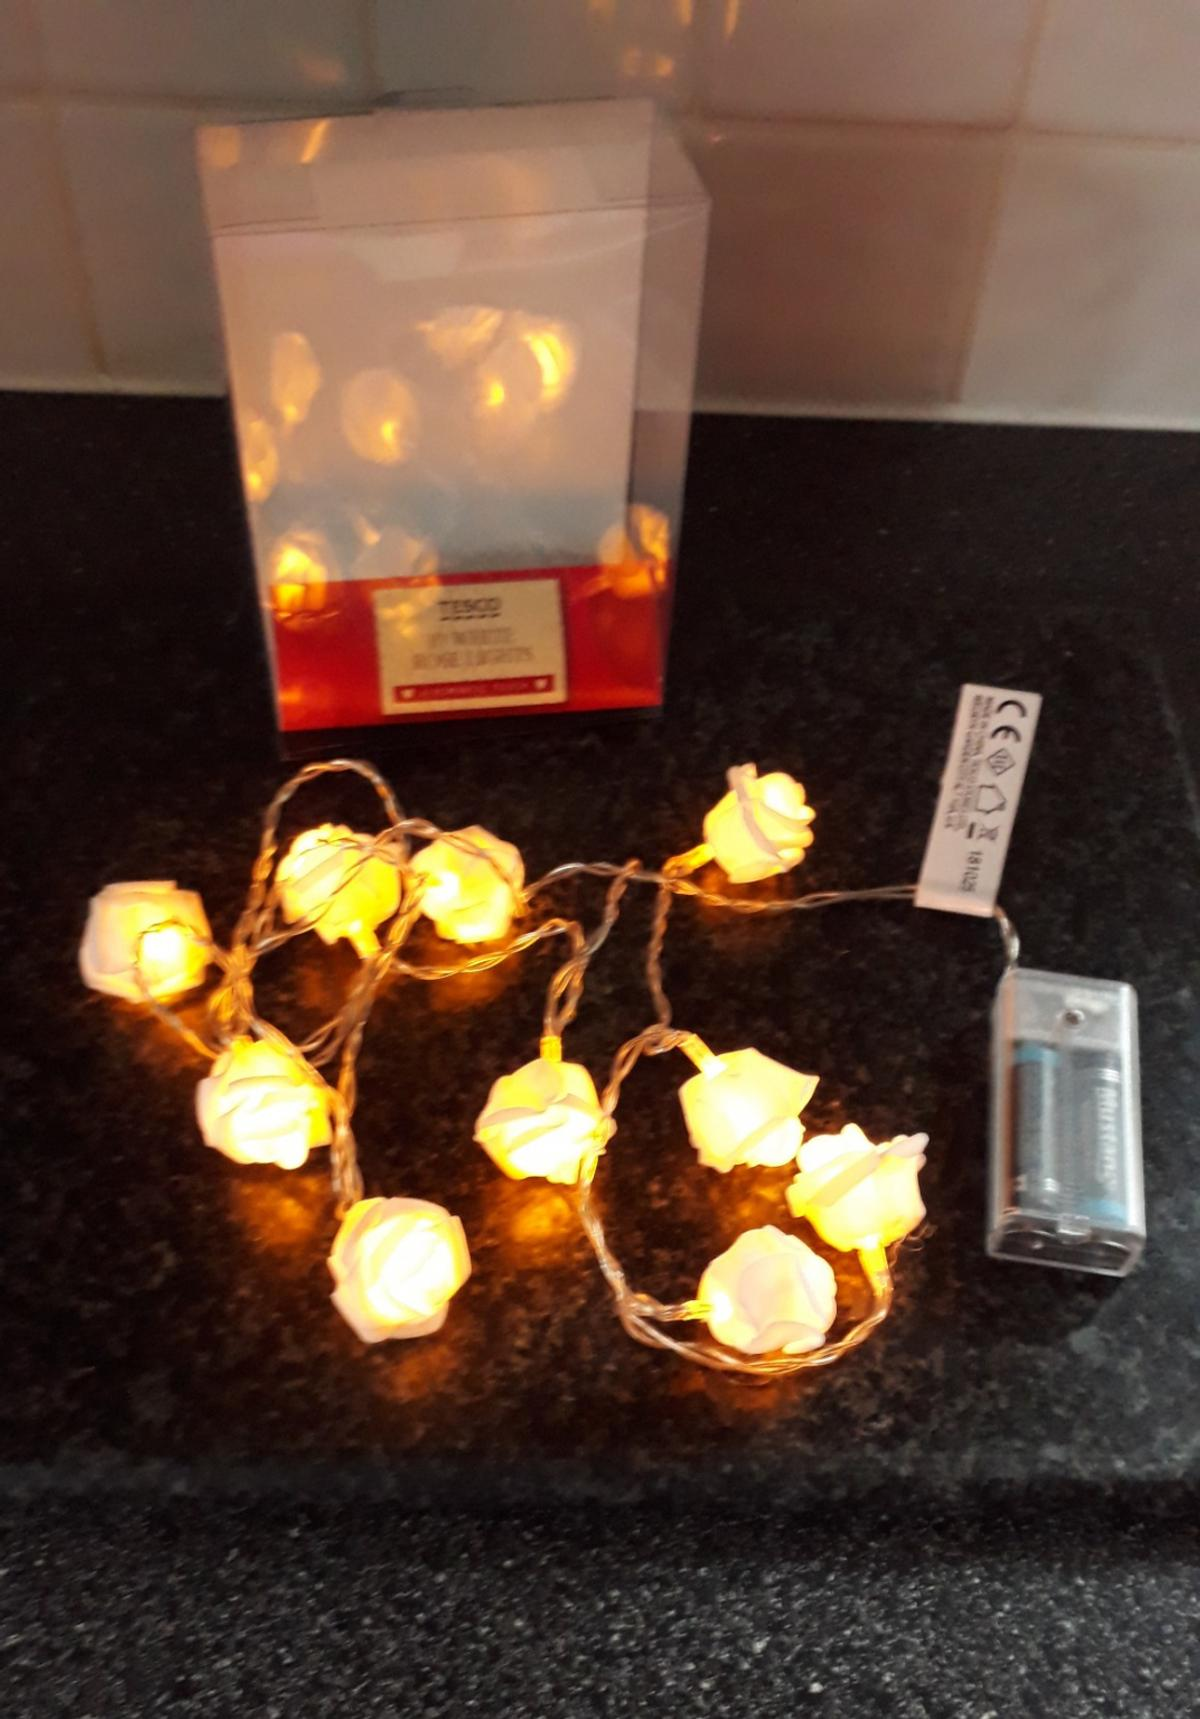 *POSTAGE IS AVAILABLE* SELLING: 10 X LIGHT ROSES COME WITH BATTERIES & BOXED. WARM GLOW COLOUR BOUGHT, BUT NOT USED. ALL WORKING FINE.. SEE ALL PHOTOS..